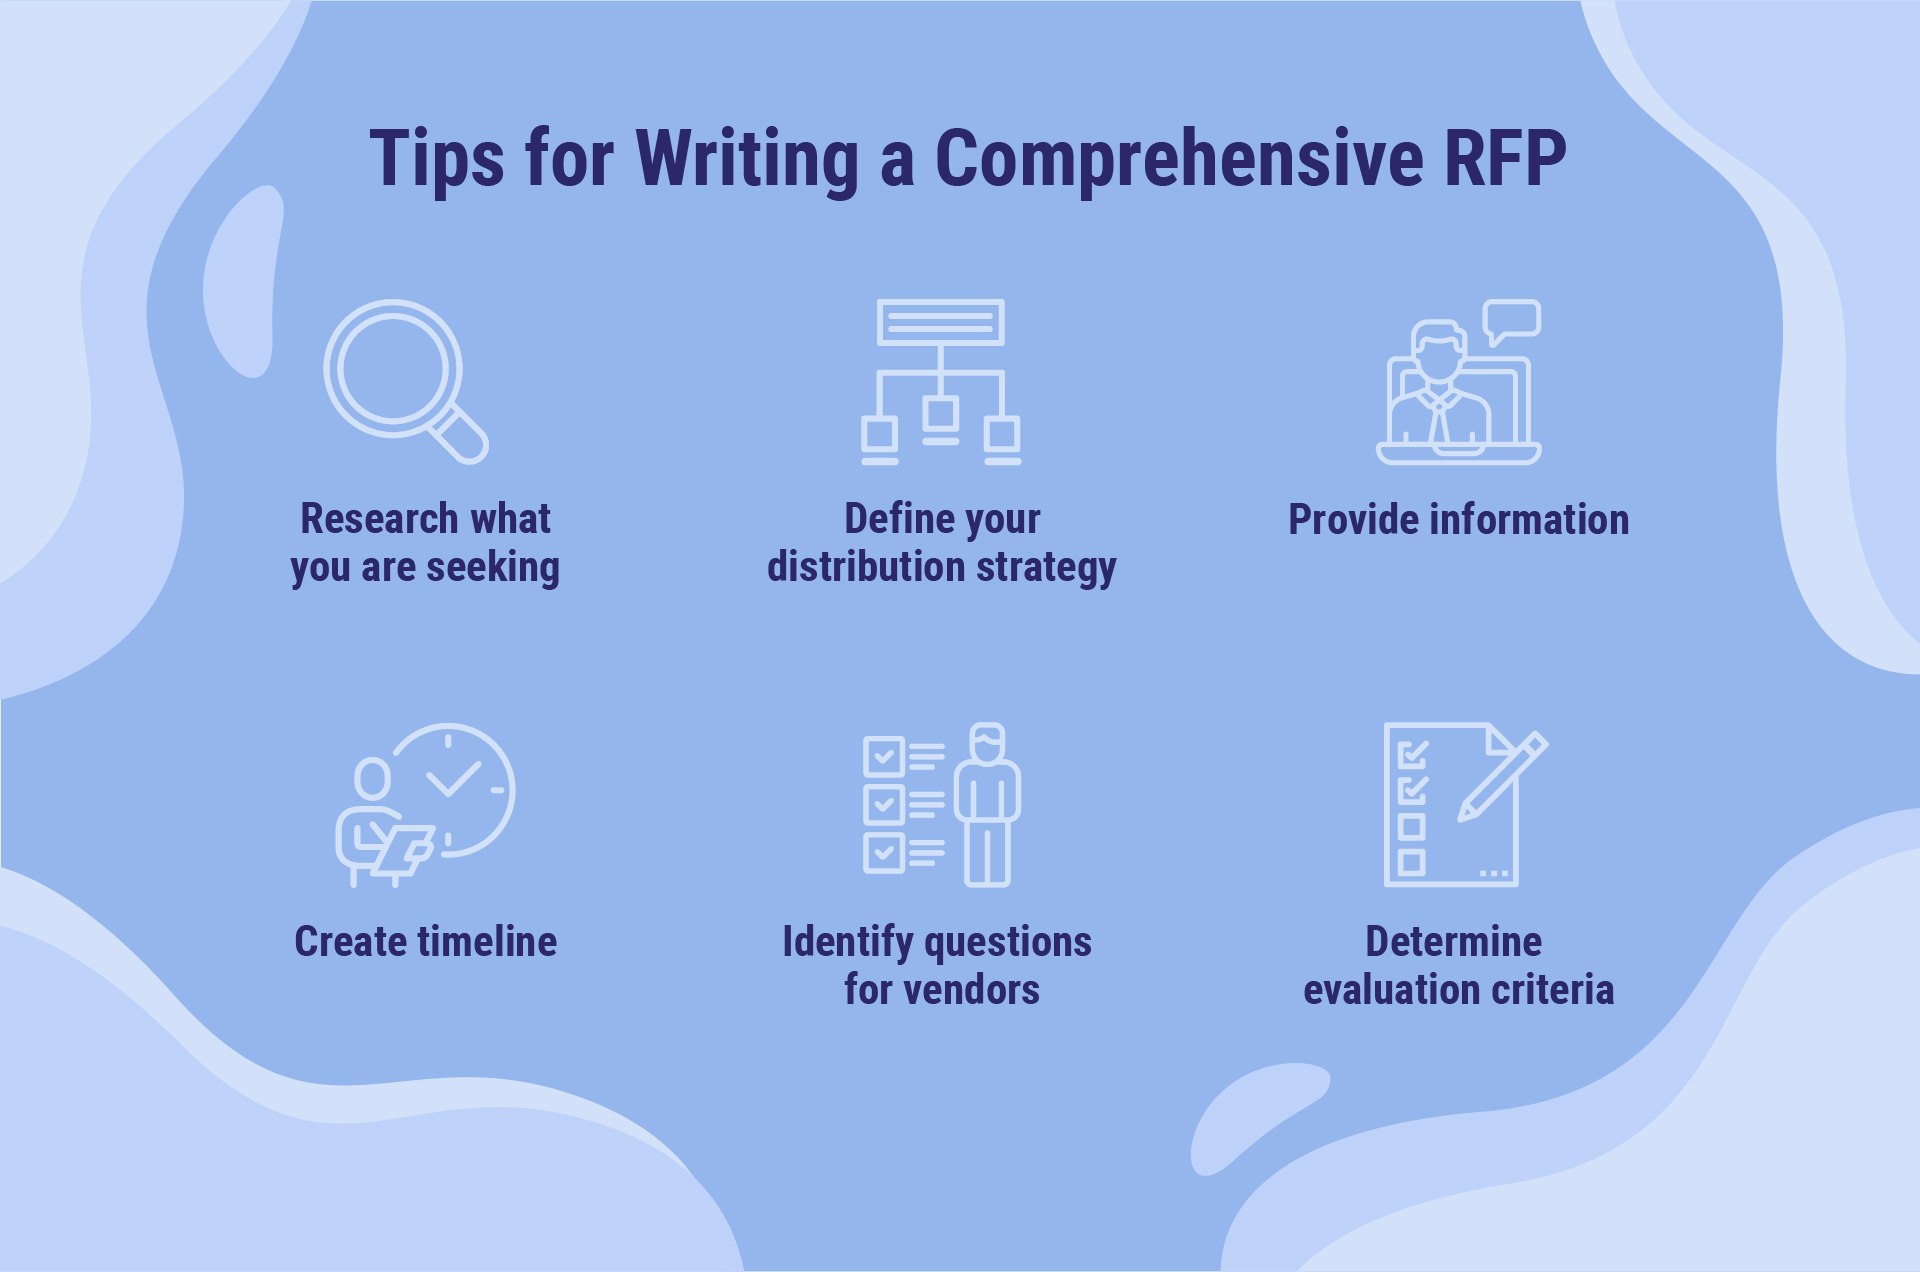 tips to create effective RFP